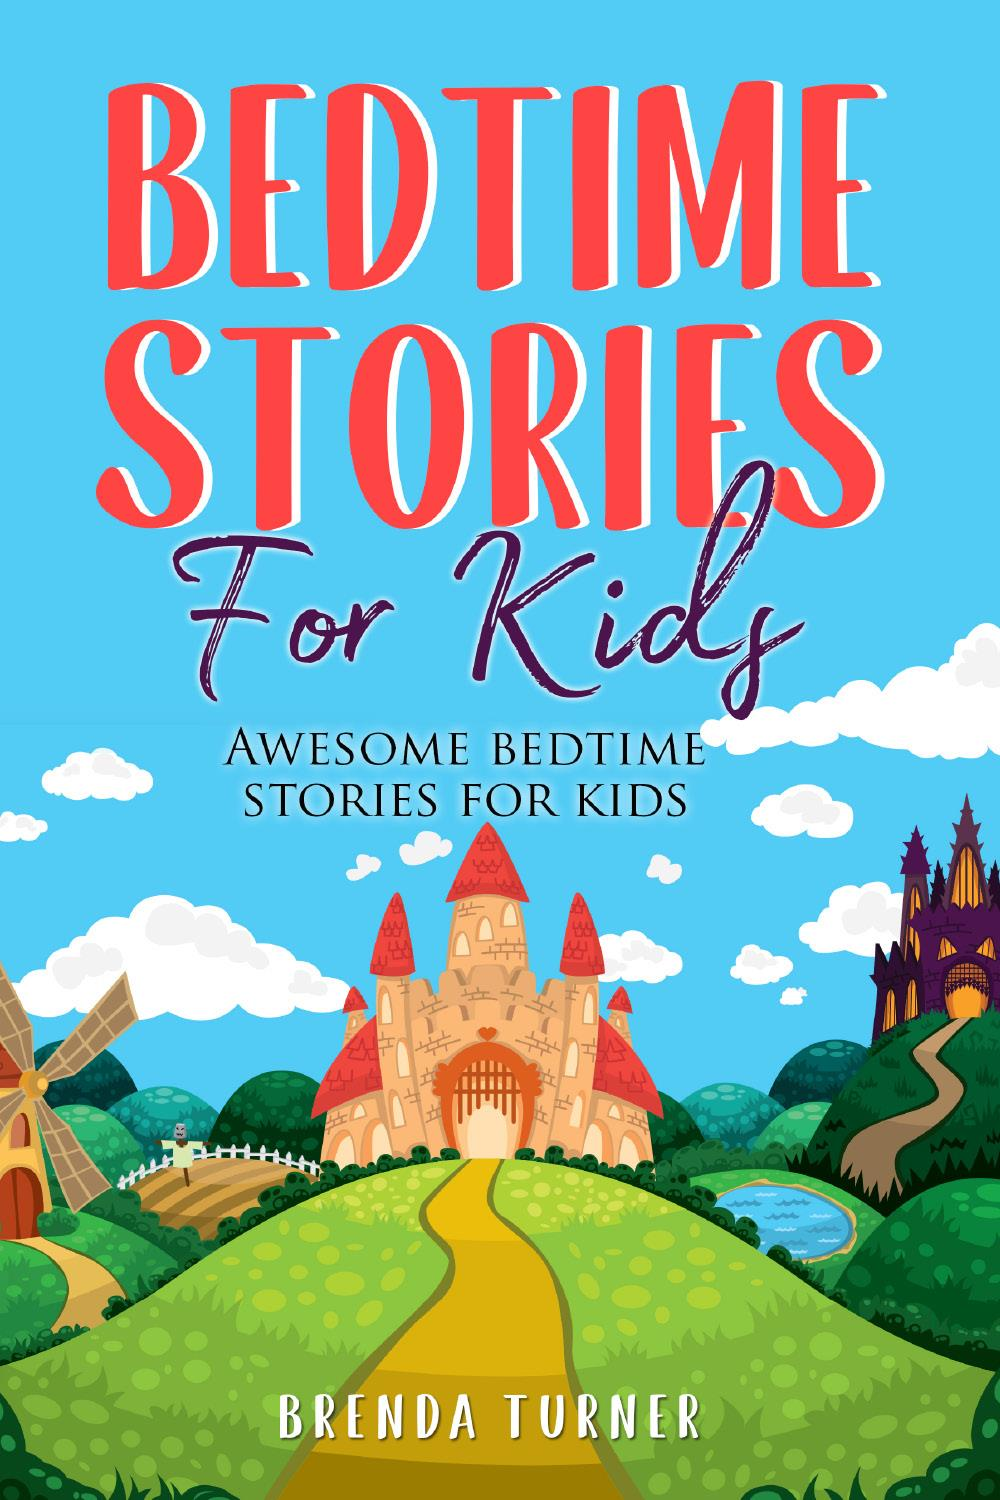 Bedtime Stories for Kids. Awesome bedtime stories for kids